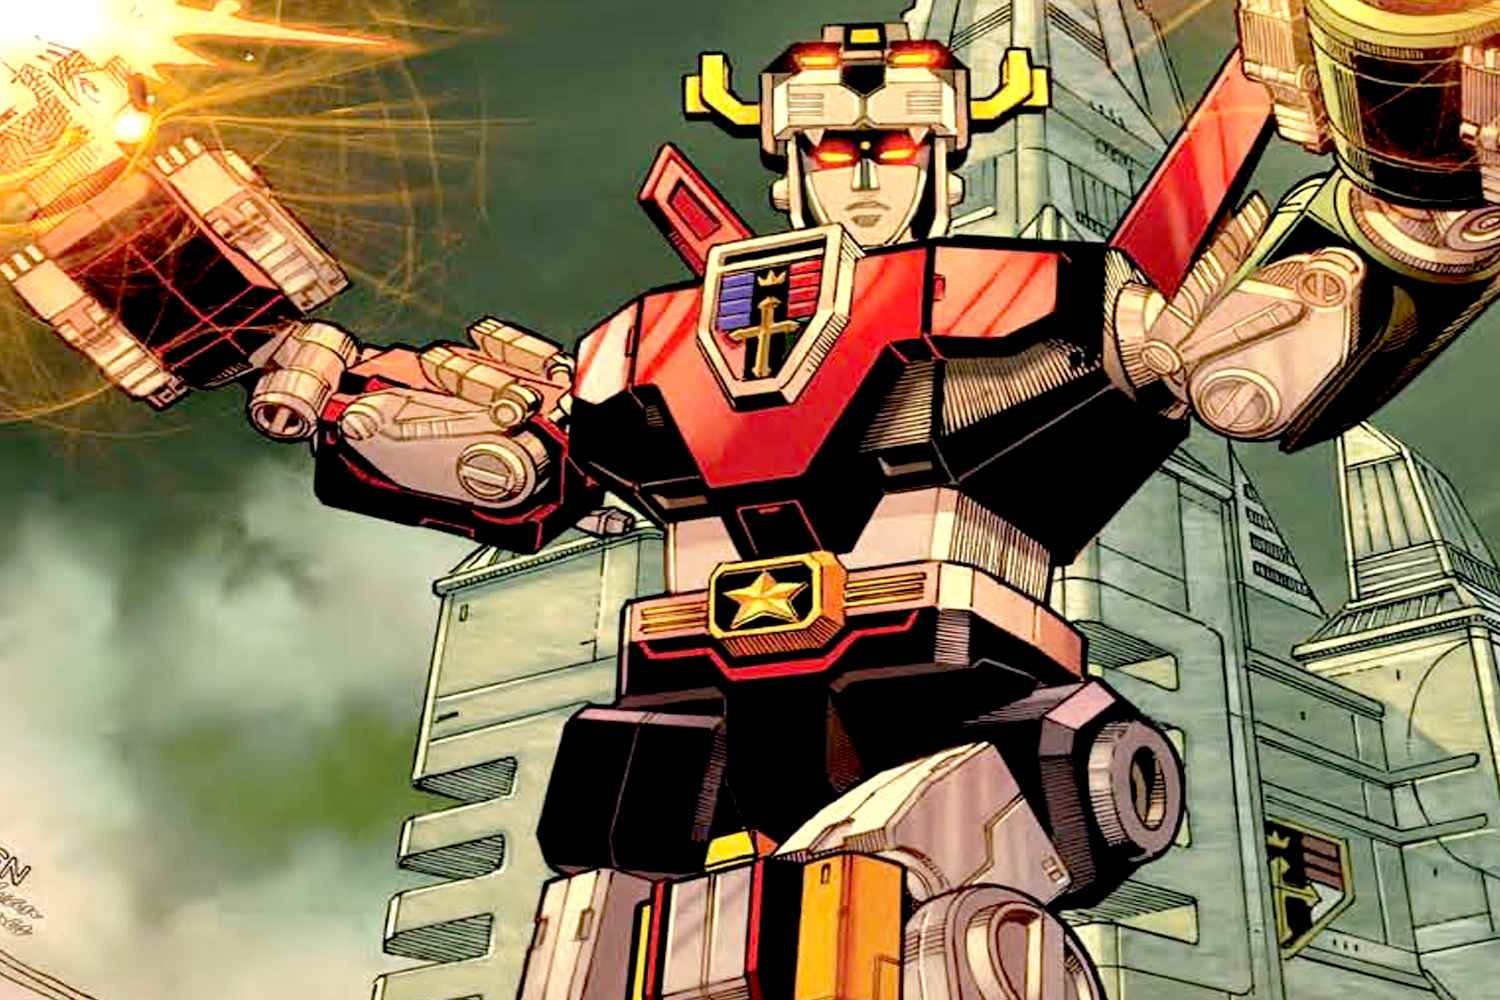 19 Must-See Anime Series With Giant Robots